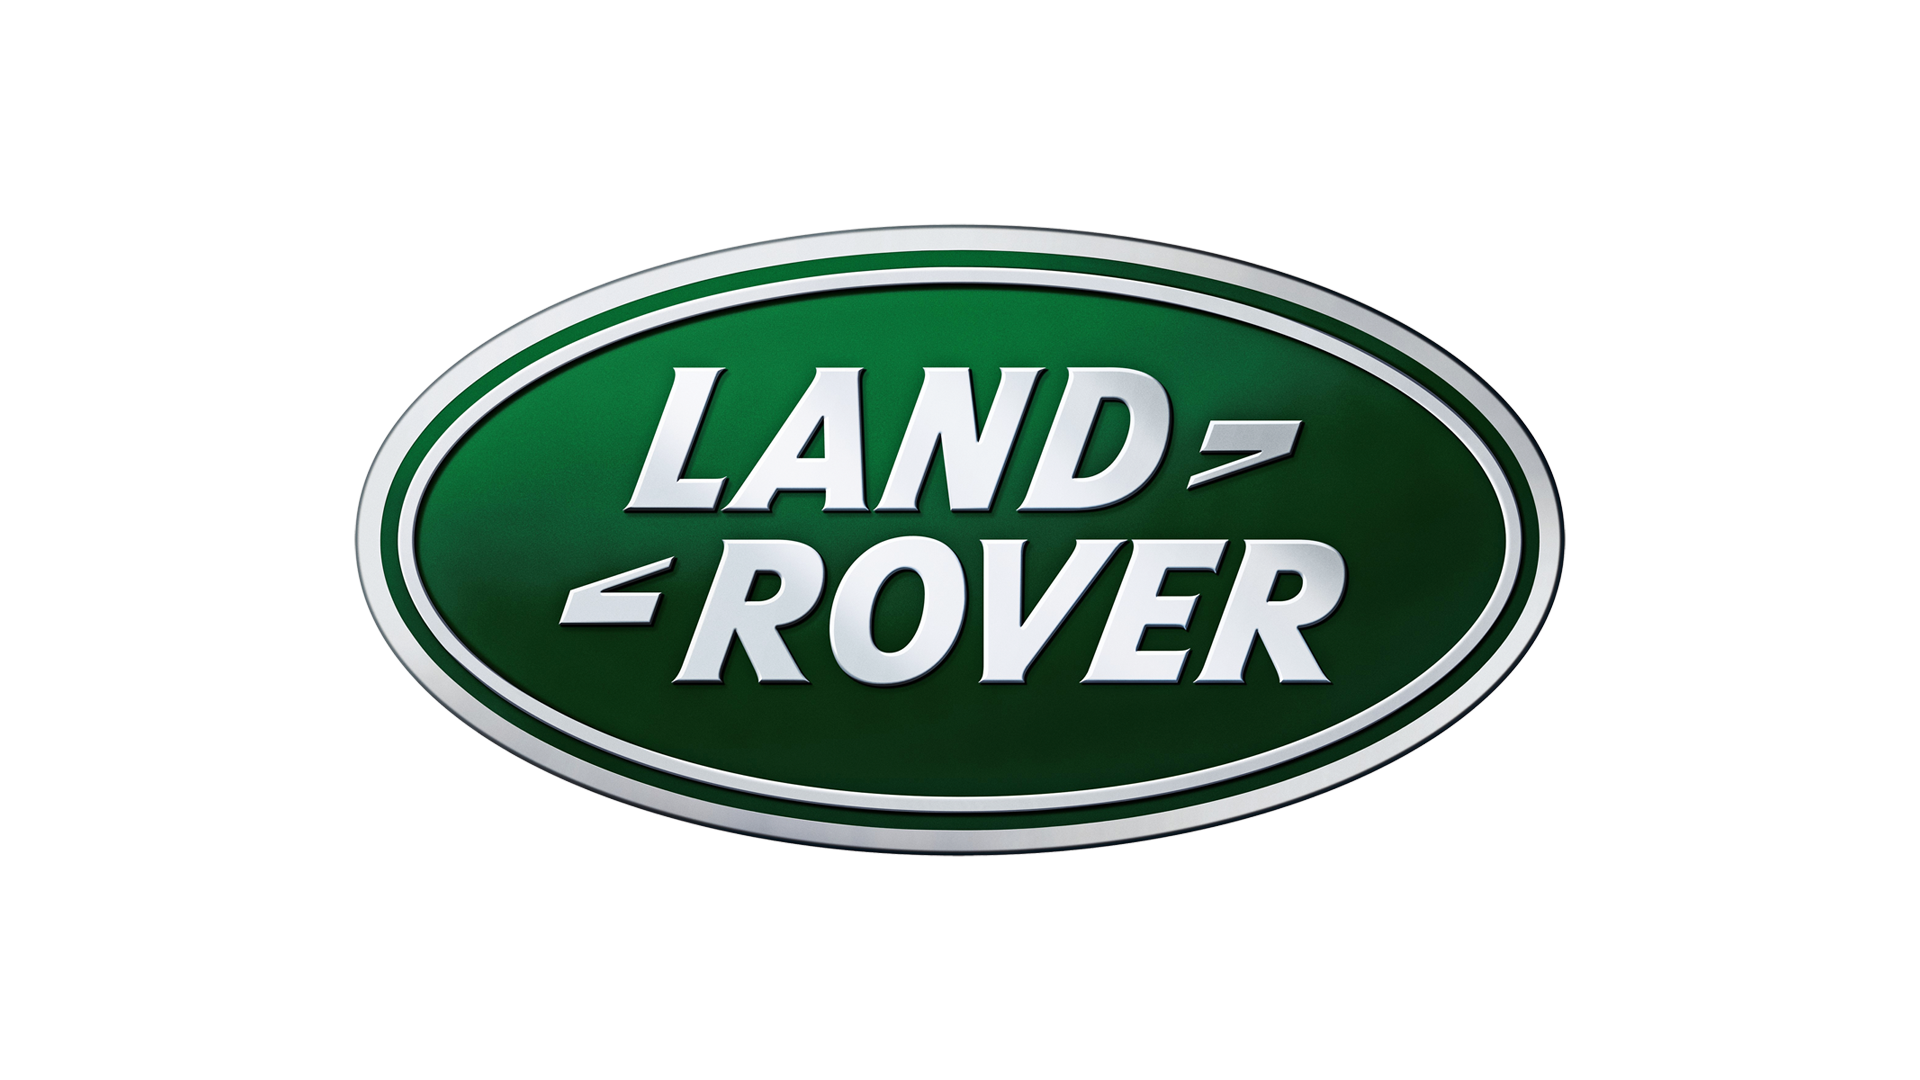 land rover logo hd png meaning information carlogos org rh carlogos org Range Rover Sport Logo land rover logo